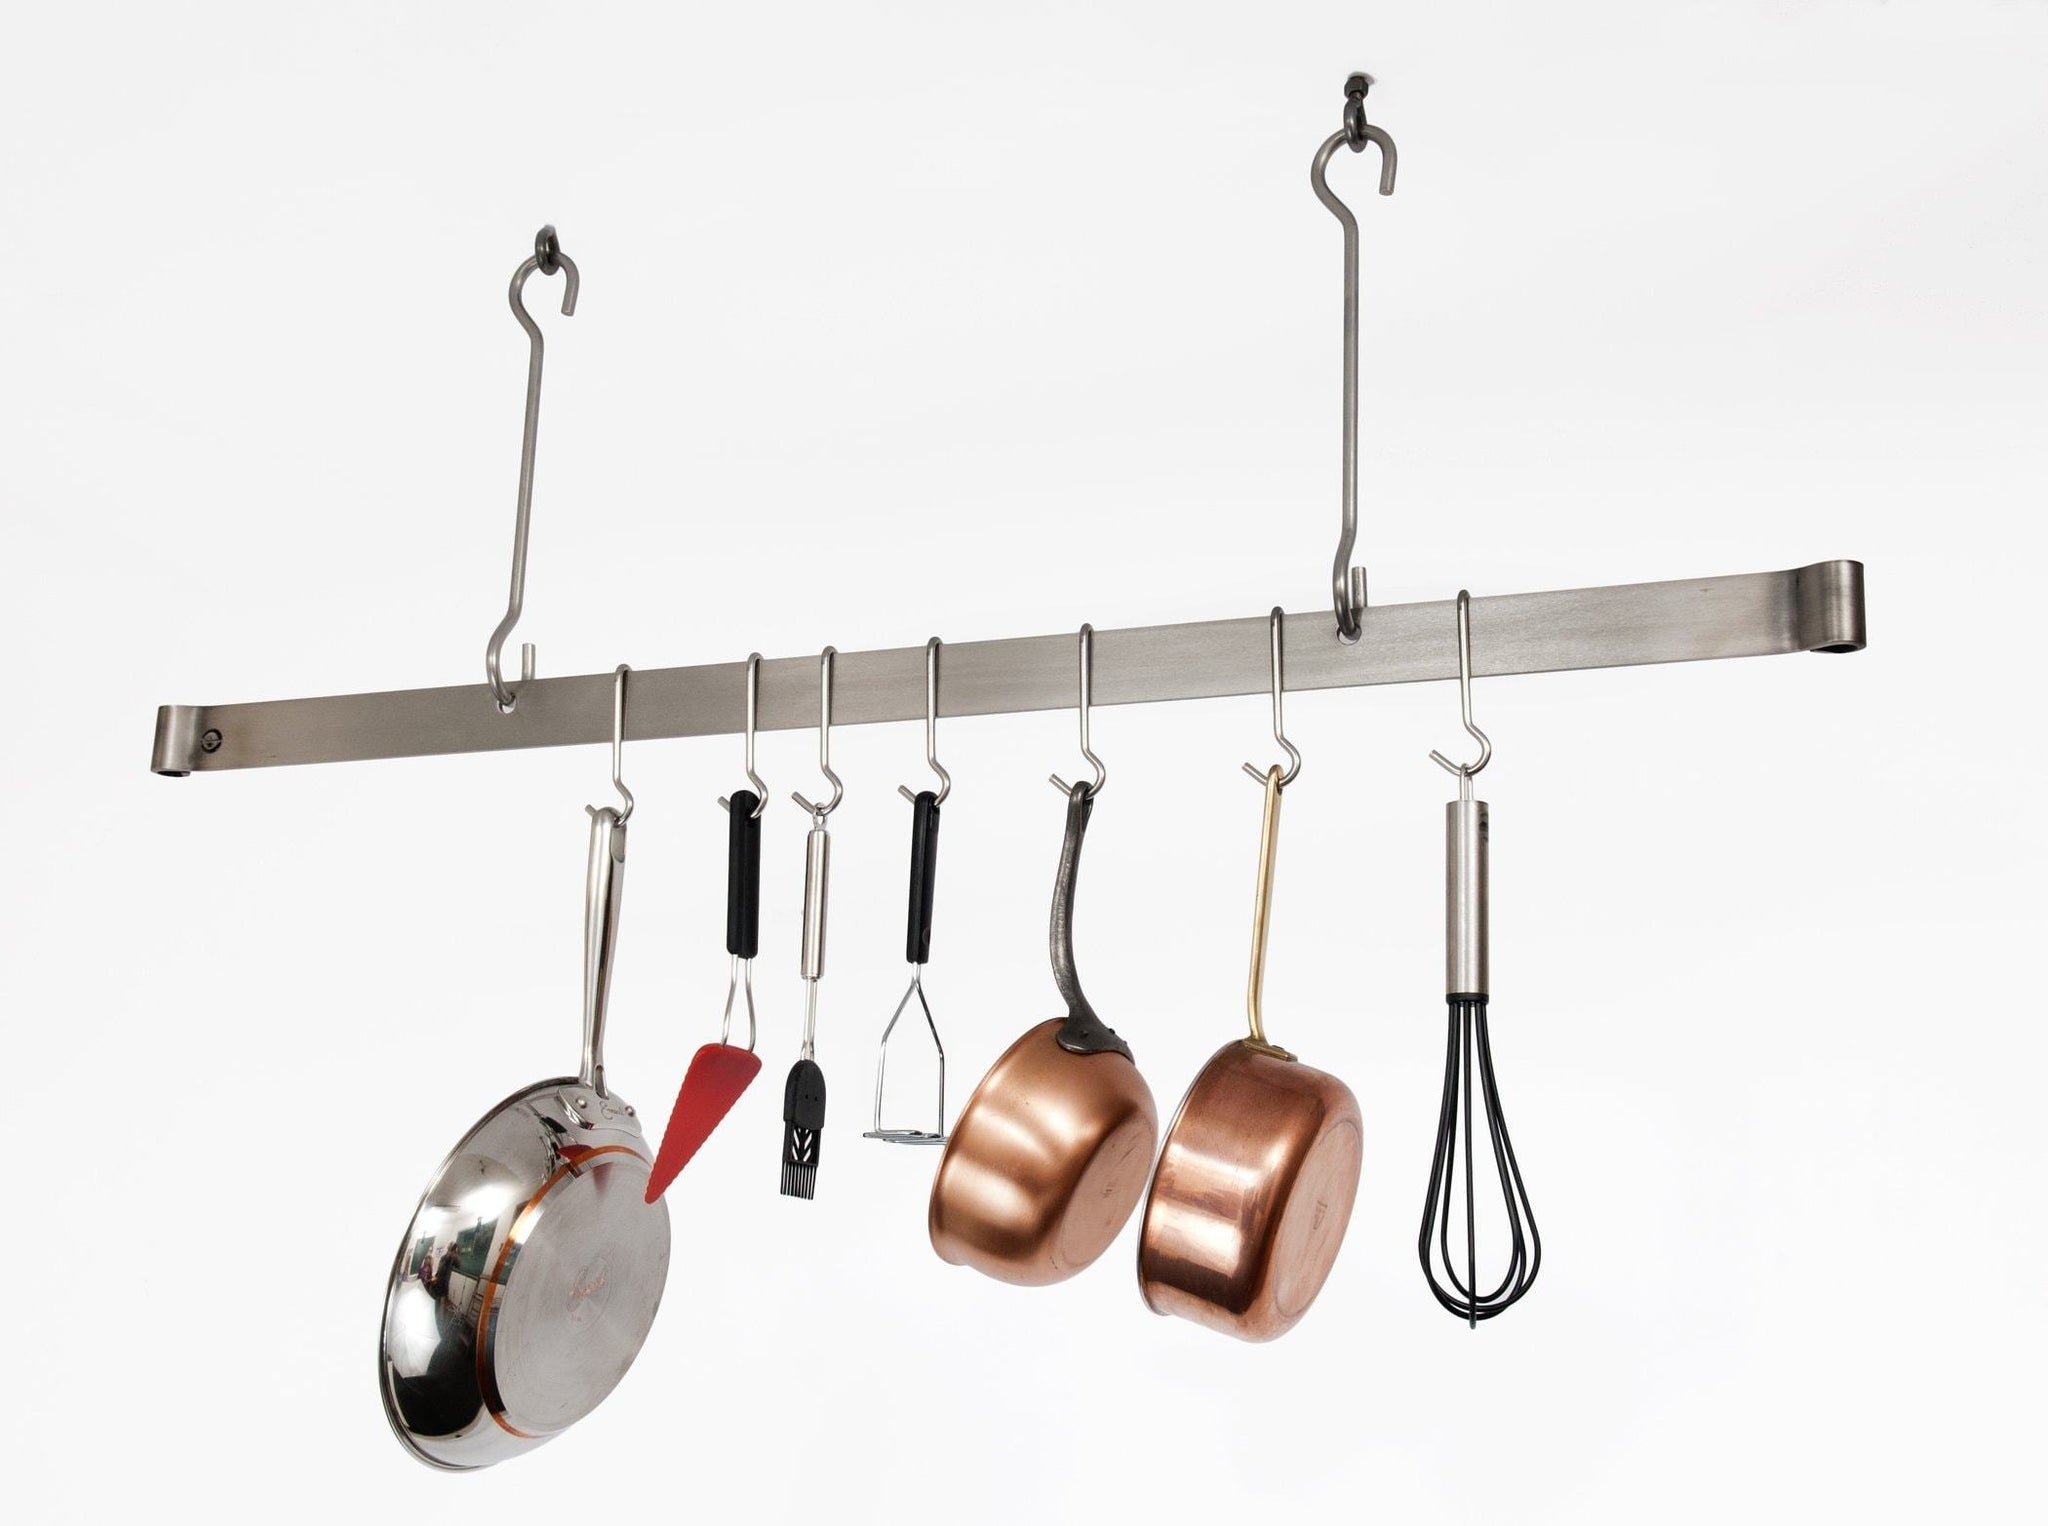 Amazon best enclume premier 48 inch offset hook ceiling bar pot rack stainless steel